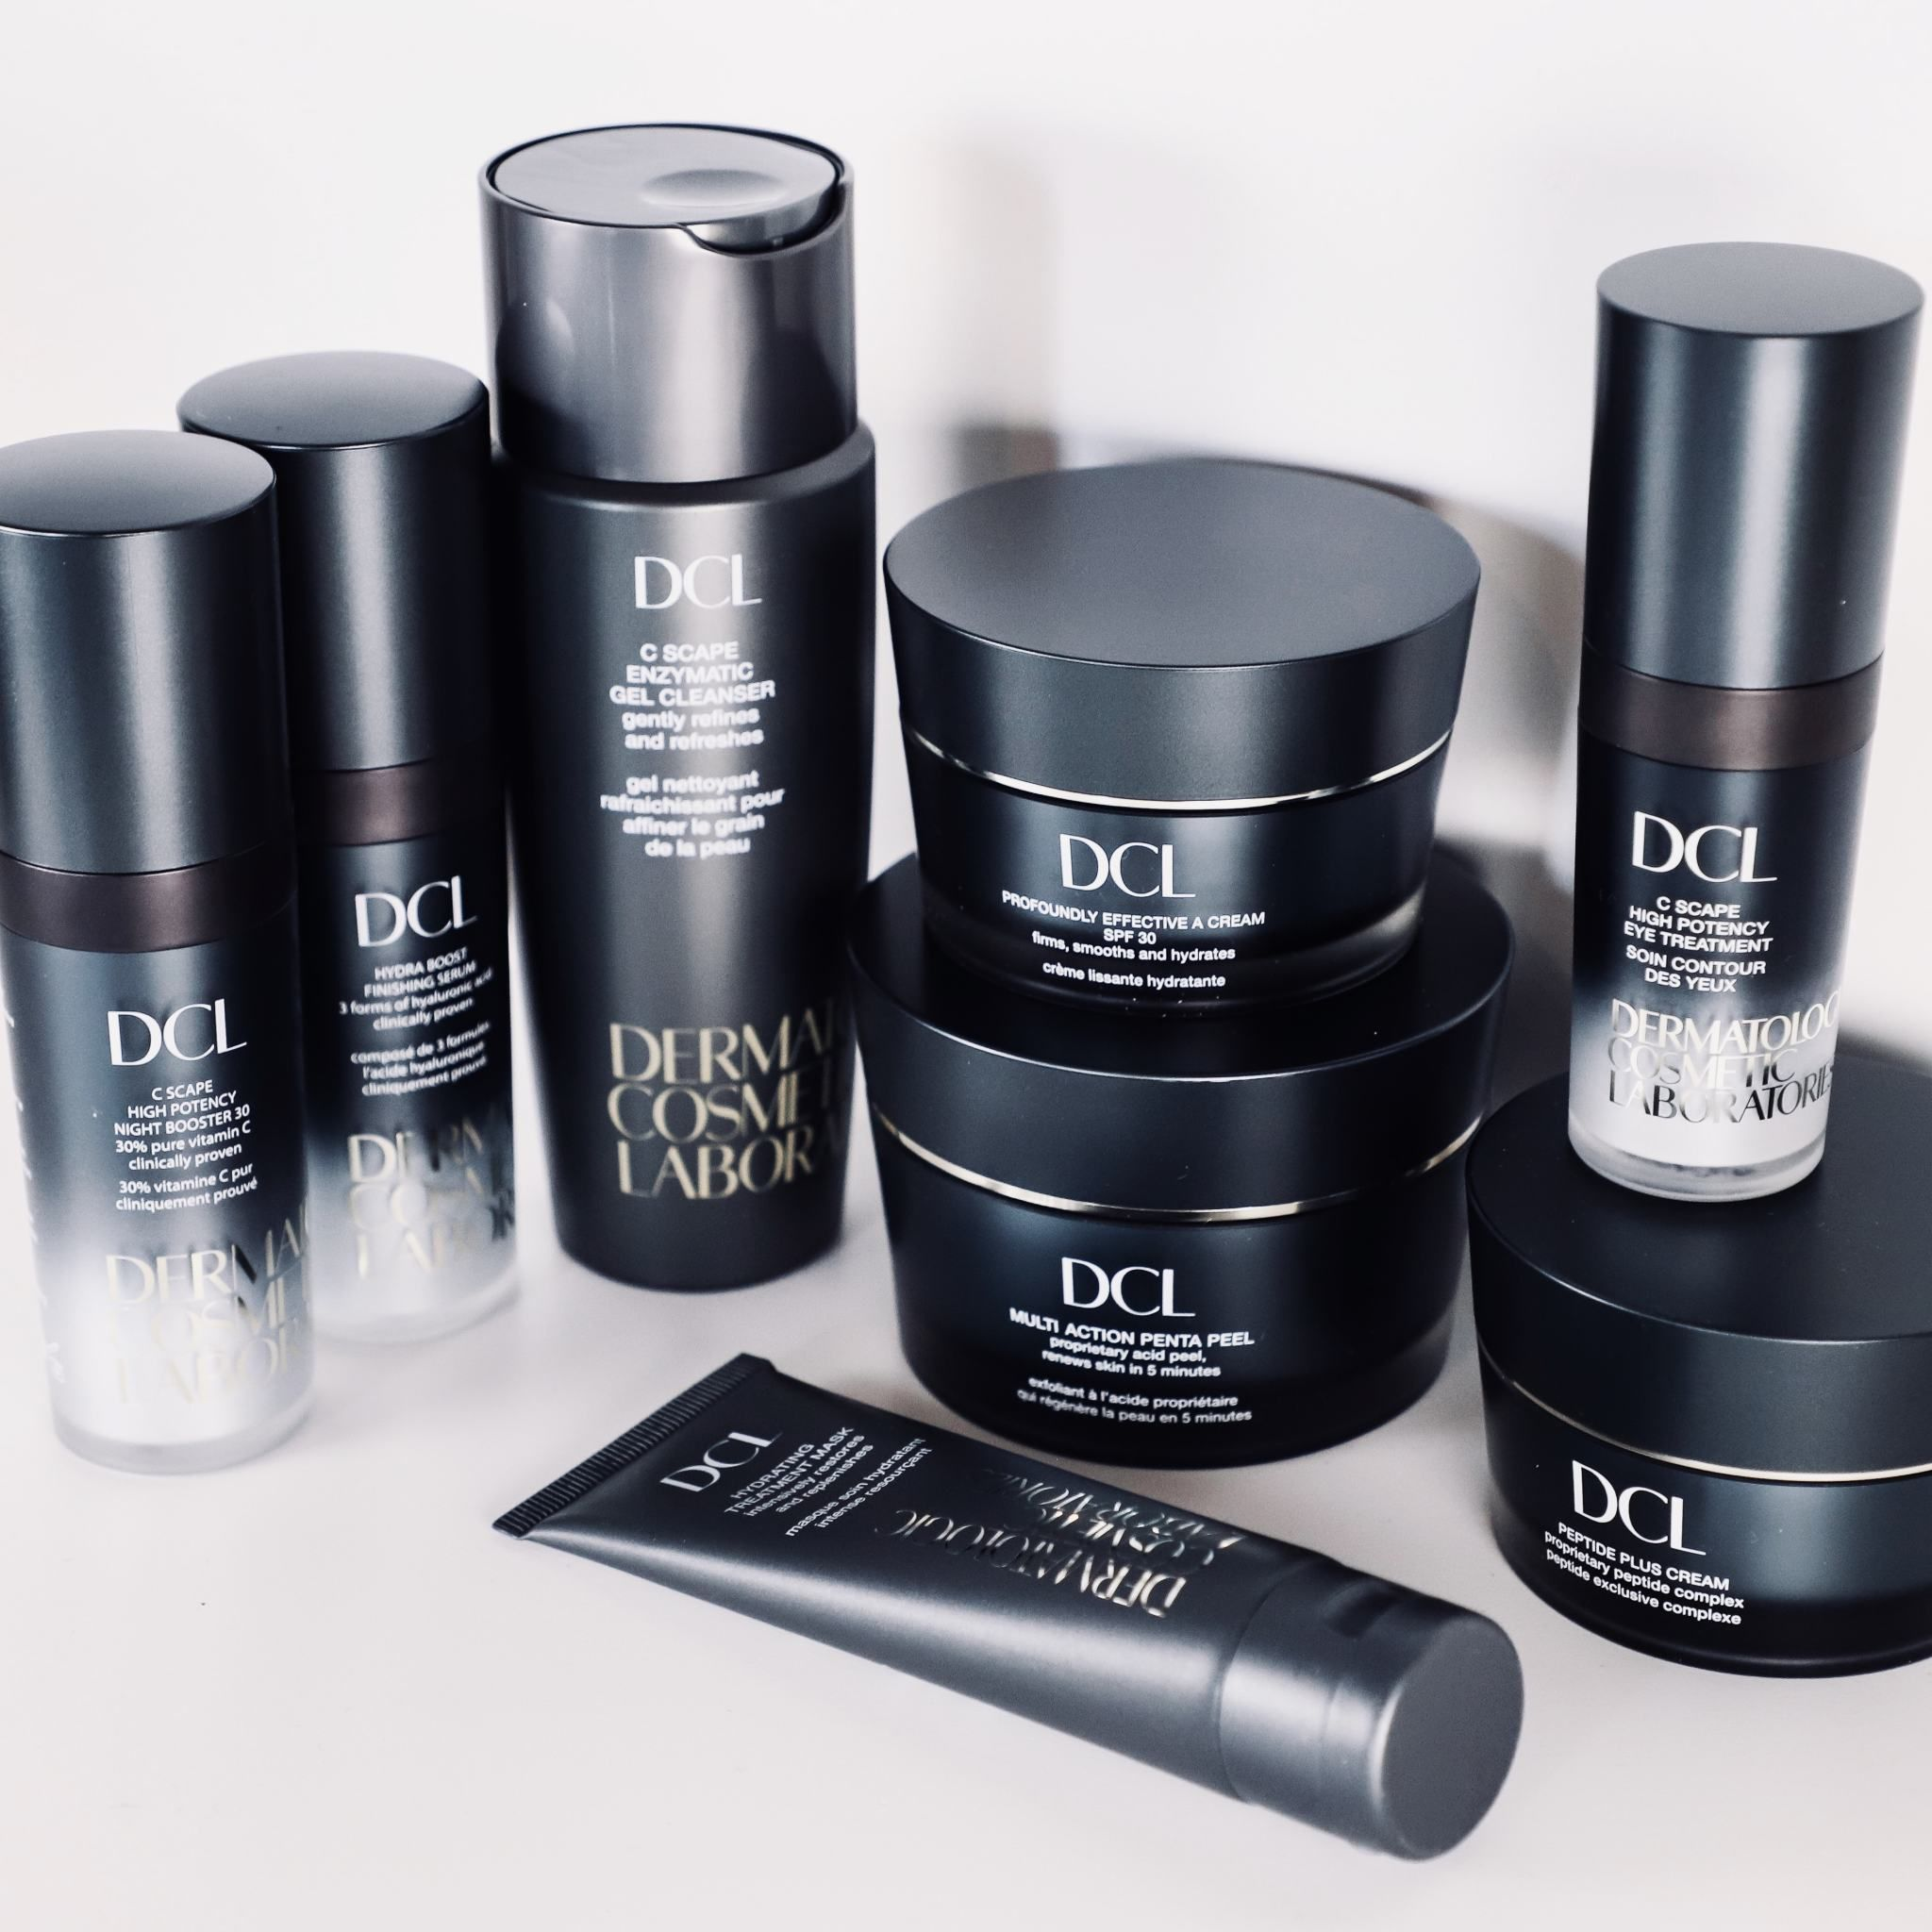 12 Days Day 8 Dcl Skincare Skin Care Cosmetics Laboratory Day